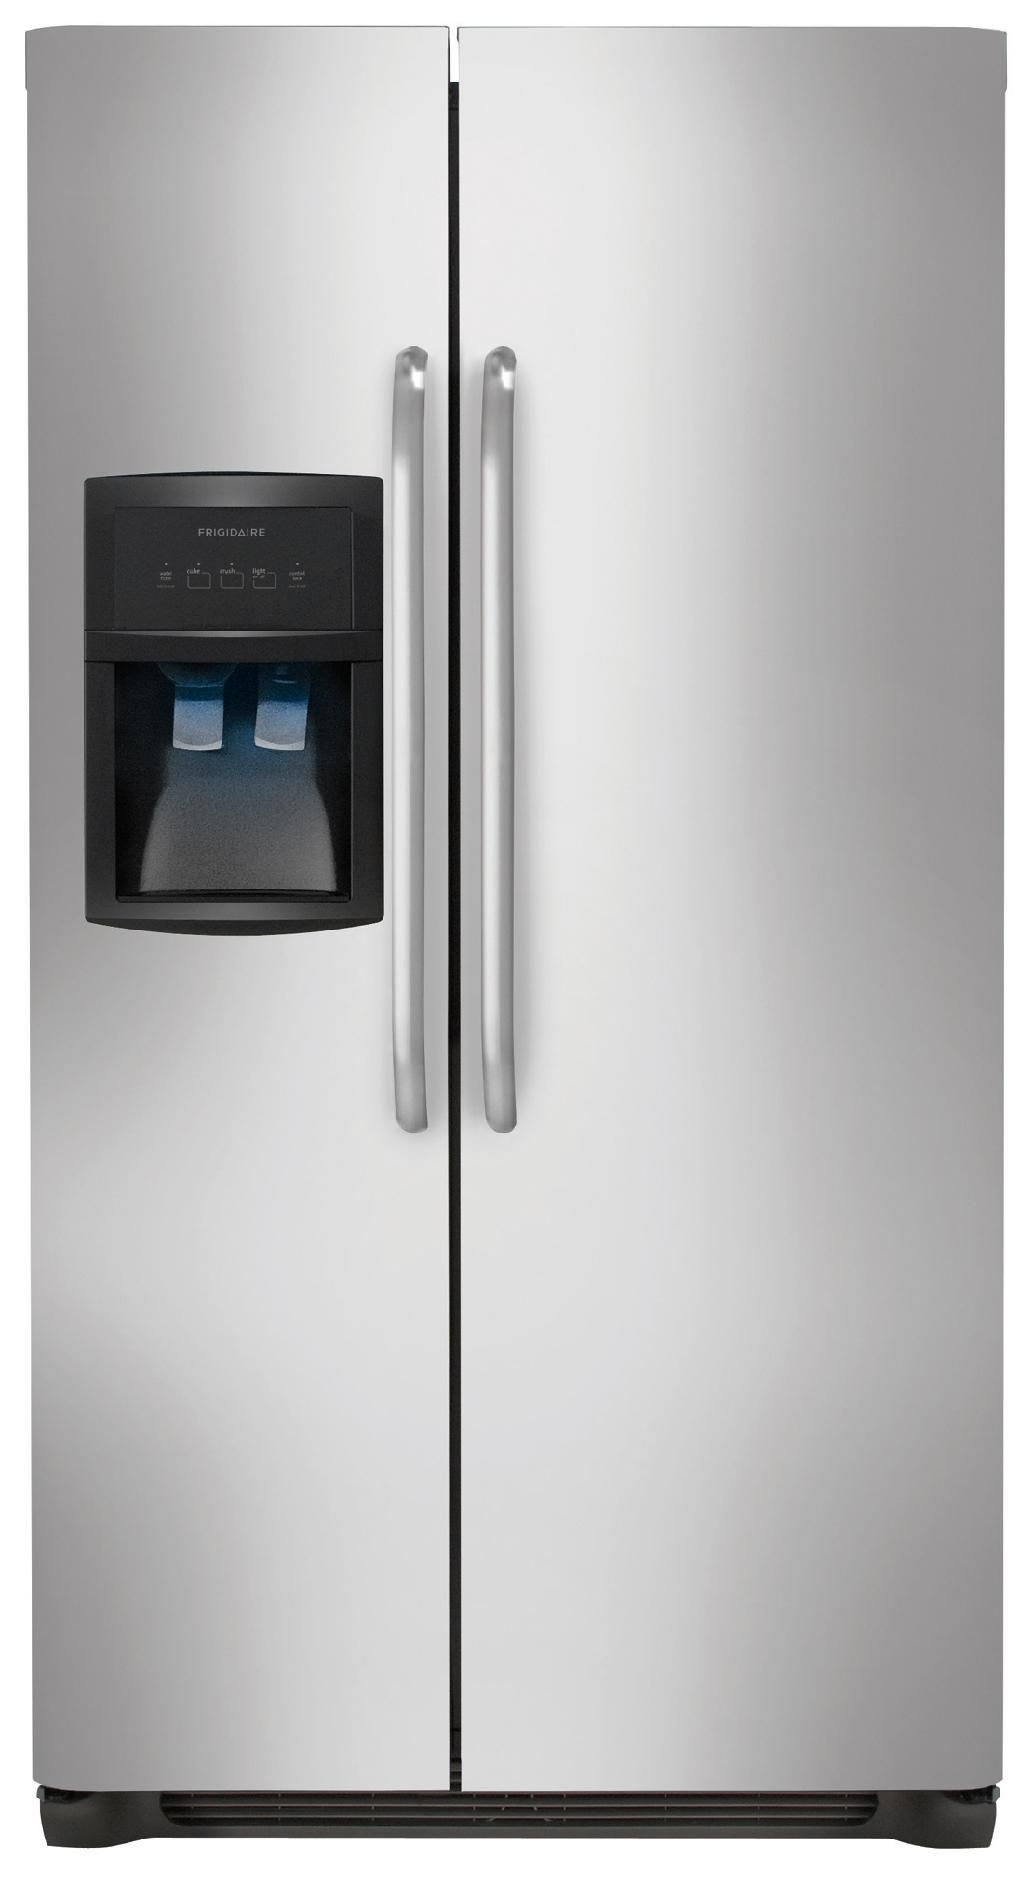 Ffhs2622ms Frigidaire Octopart